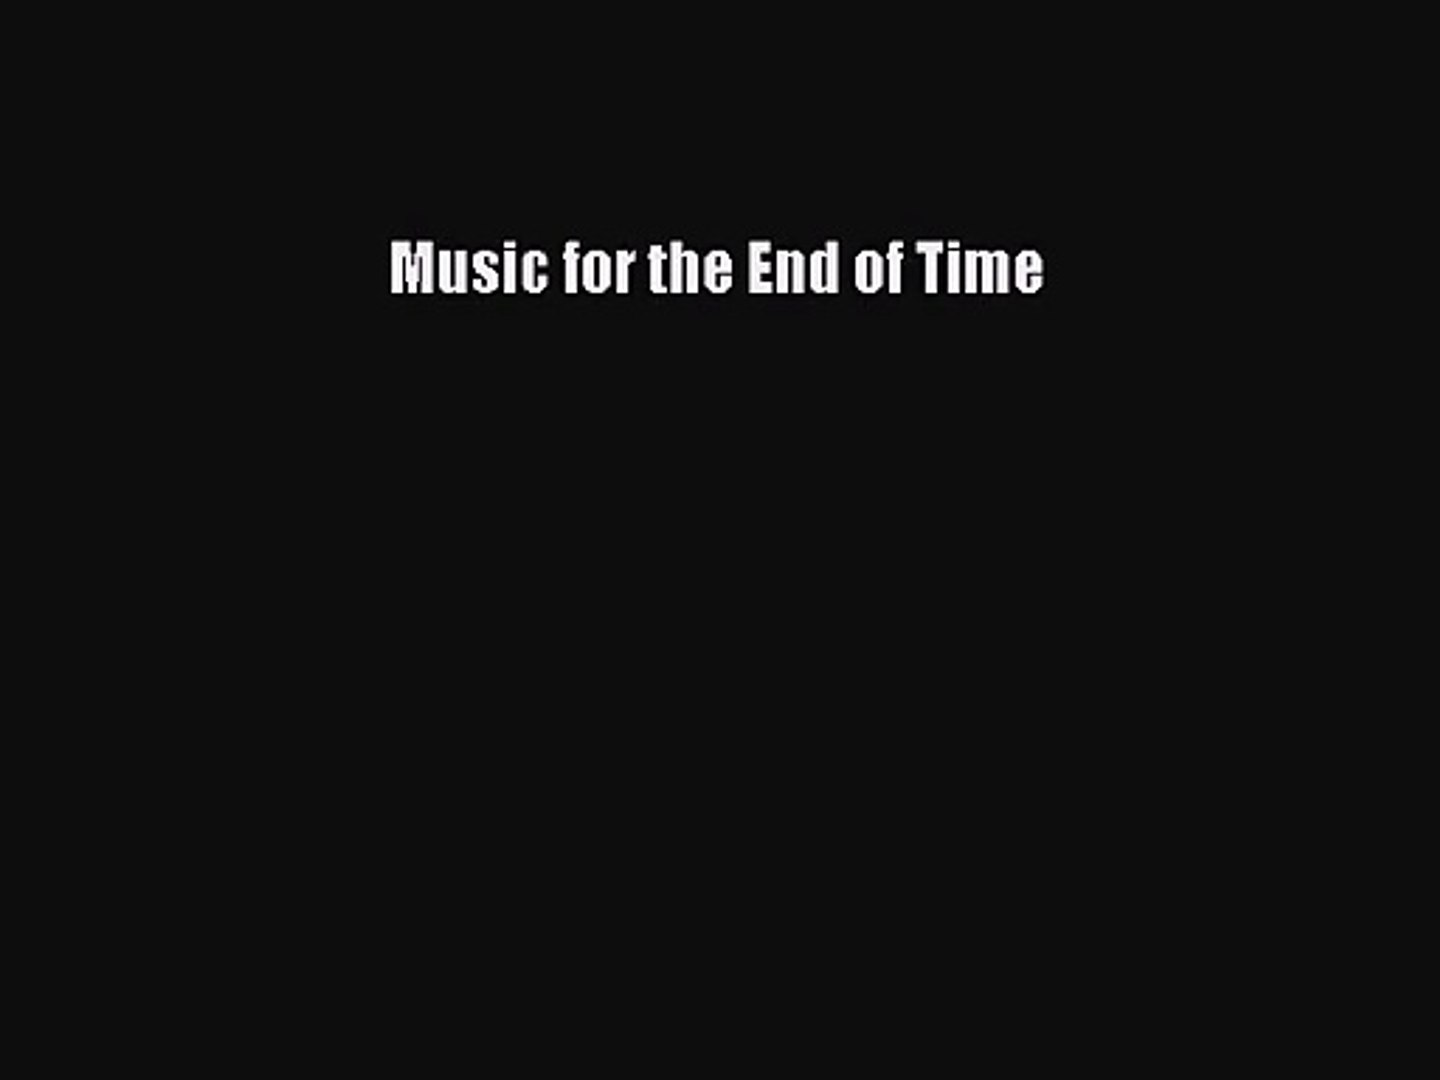 Music for the End of Time [PDF Download] Music for the End of Time# [Download] Online